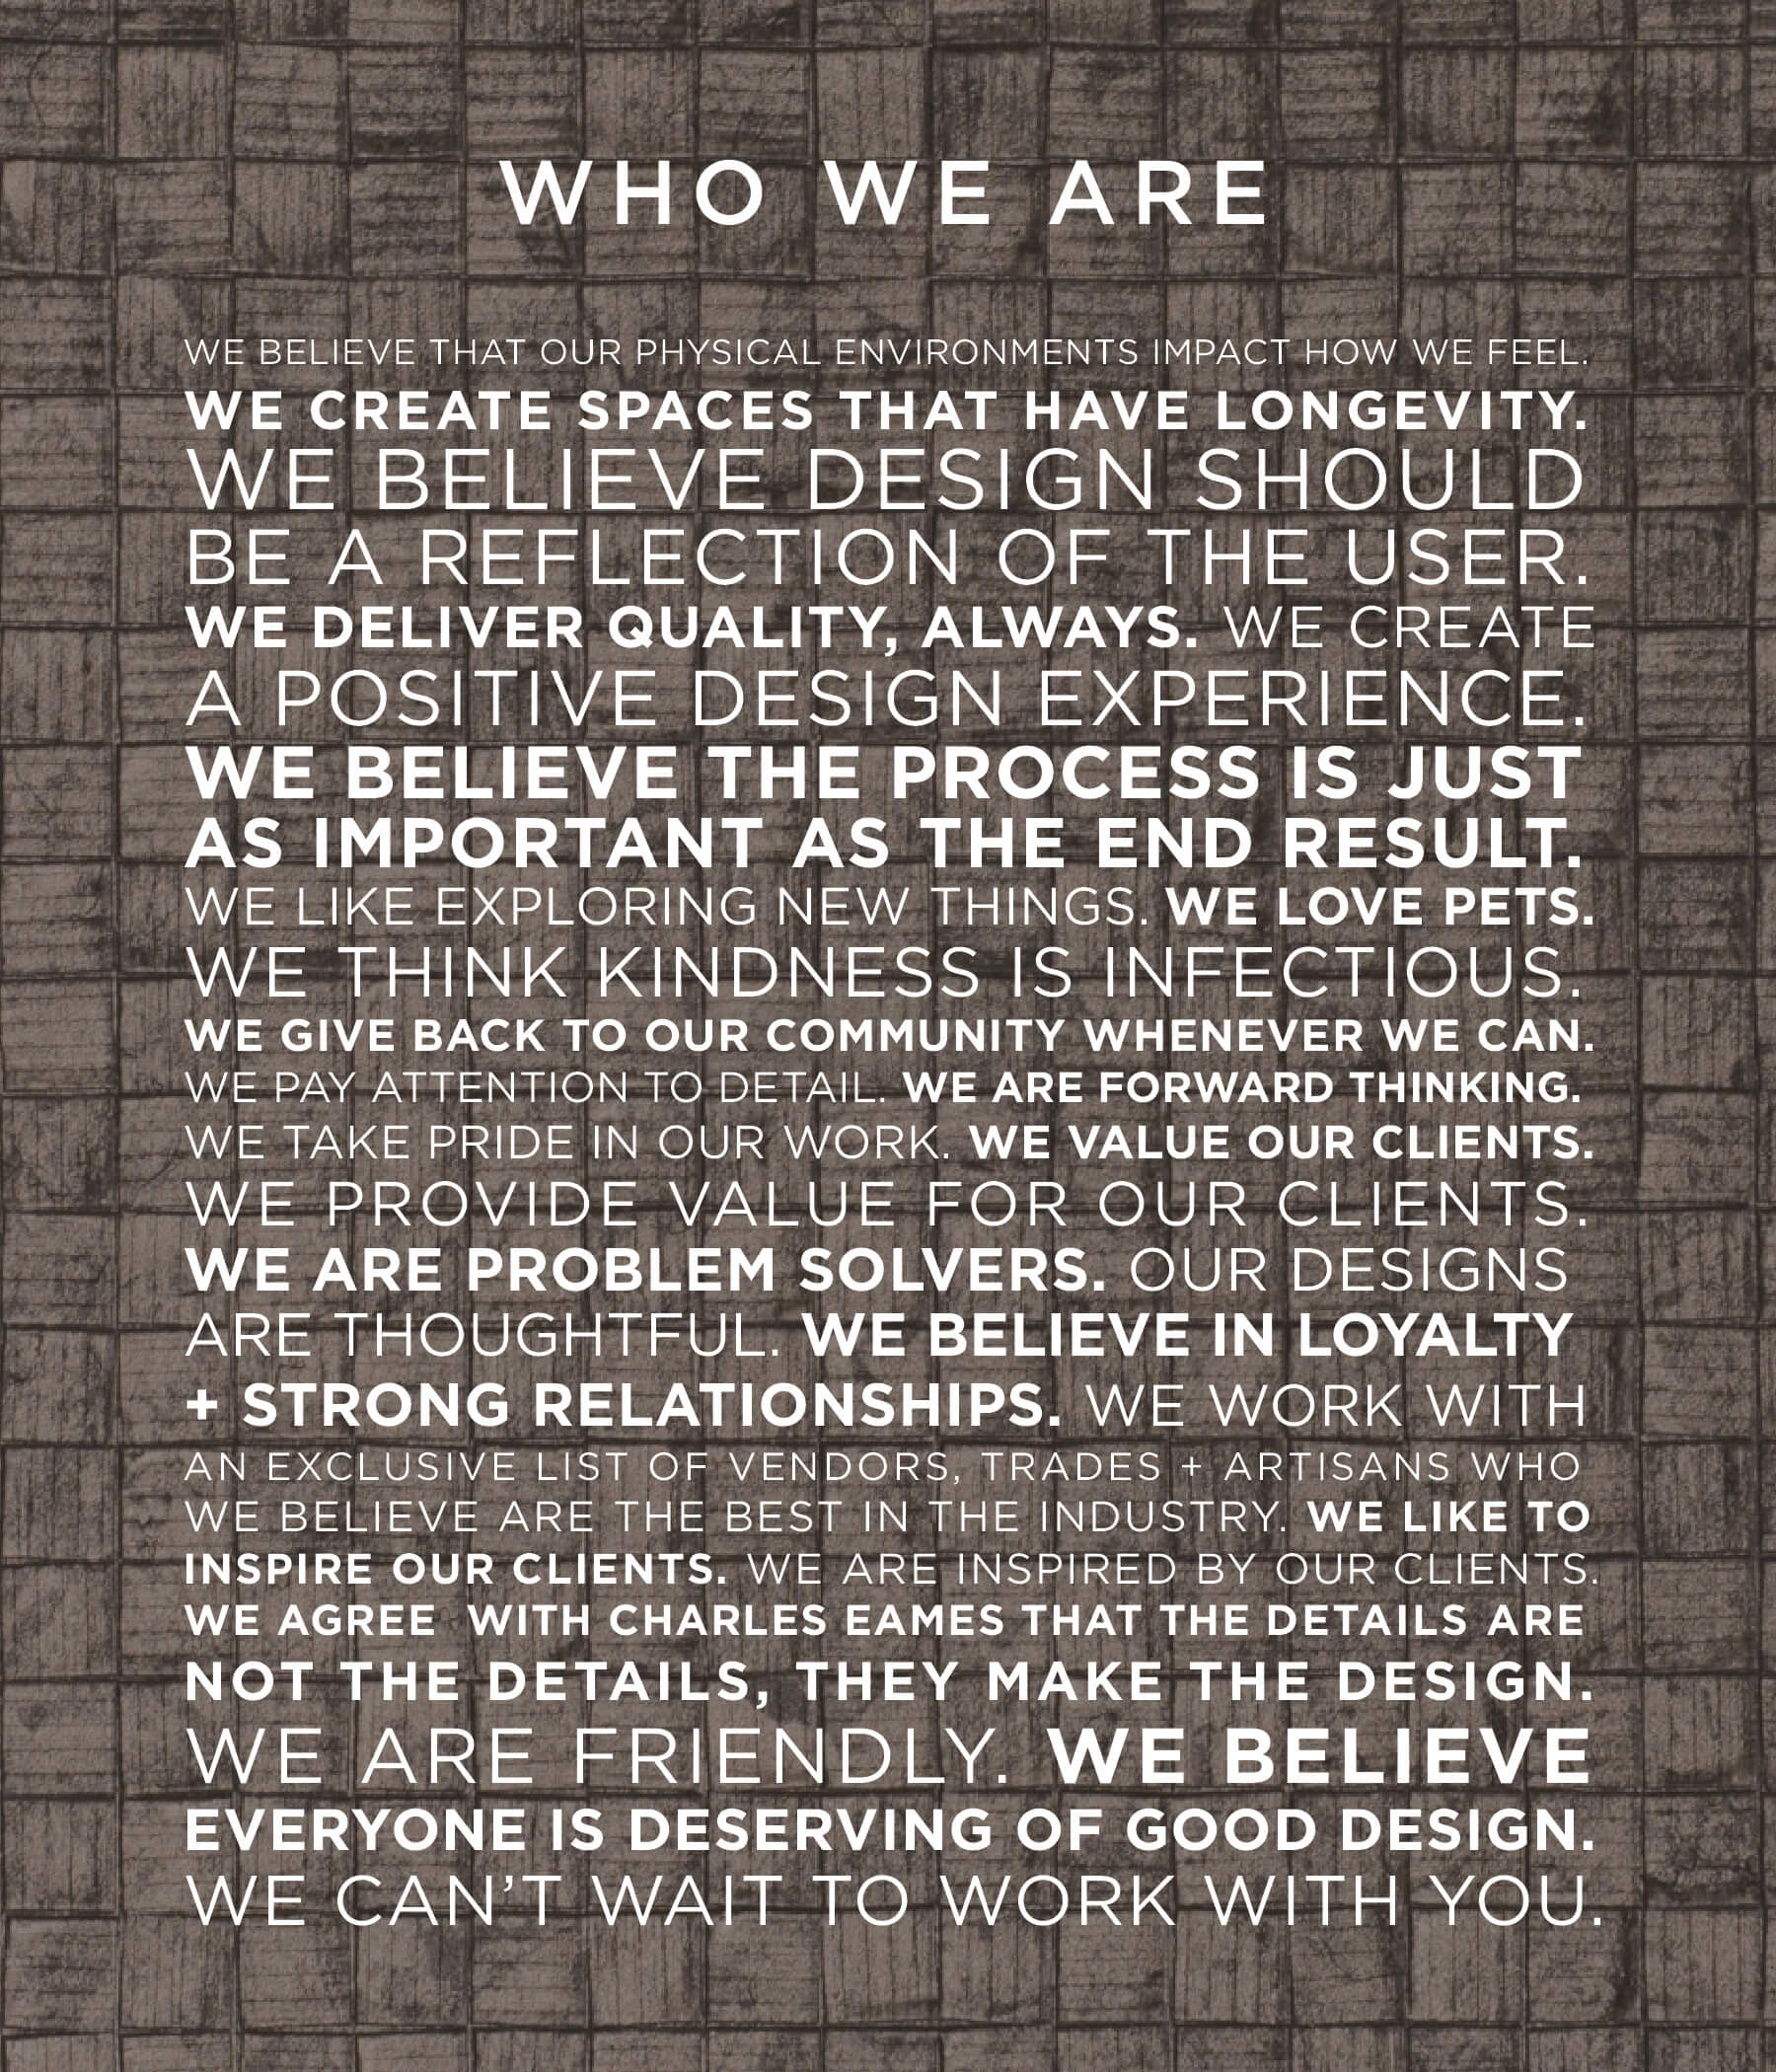 WE BELIEVE THAT OUR PHYSICAL ENVIRONMENTS IMPACT HOW WE FEEL.  WE CREATE SPACES THAT HAVE LONGEVITY. WE BELIEVE DESIGN SHOULD BE A REFLECTION OF THE USER. WE DELIVER QUALITY, ALWAYS. WE CREATE A POSITIVE DESIGN EXPERIENCE. WE BELIEVE THE PROCESS IS JUST AS IMPORTANT AS THE END RESULT. WE LIKE EXPLORING NEW THINGS. WE LOVE PETS. WE THINK KINDNESS IS INFECTIOUS. WE GIVE BACK TO OUR COMMUNITY WHENEVER WE CAN.  WE PAY ATTENTION TO DETAIL. WE ARE FORWARD THINKING. WE TAKE PRIDE IN OUR WORK. WE VALUE OUR CLIENTS. WE PROVIDE VALUE FOR OUR CLIENTS. WE ARE PROBLEM SOLVERS. OUR DESIGNS ARE THOUGHTFUL. WE BELIEVE IN LOYALTY + STRONG RELATIONSHIPS. WE WORK WITH AN EXCLUSIVE LIST OF VENDORS, TRADES + ARTISANS WHO WE BELIEVE ARE THE BEST IN THE INDUSTRY. WE LIKE TO INSPIRE OUR CLIENTS. WE ARE INSPIRED BY OUR CLIENTS. WE AGREE WITH CHARLES EAMES THAT THE DETAILS ARE NOT THE DETAILS, THEY MAKE THE DESIGN. WE ARE FRIENDLY. WE BELIEVE EVERYONE IS DESERVING OF GOOD DESIGN. WE CAN'T WAIT TO WORK WITH YOU.